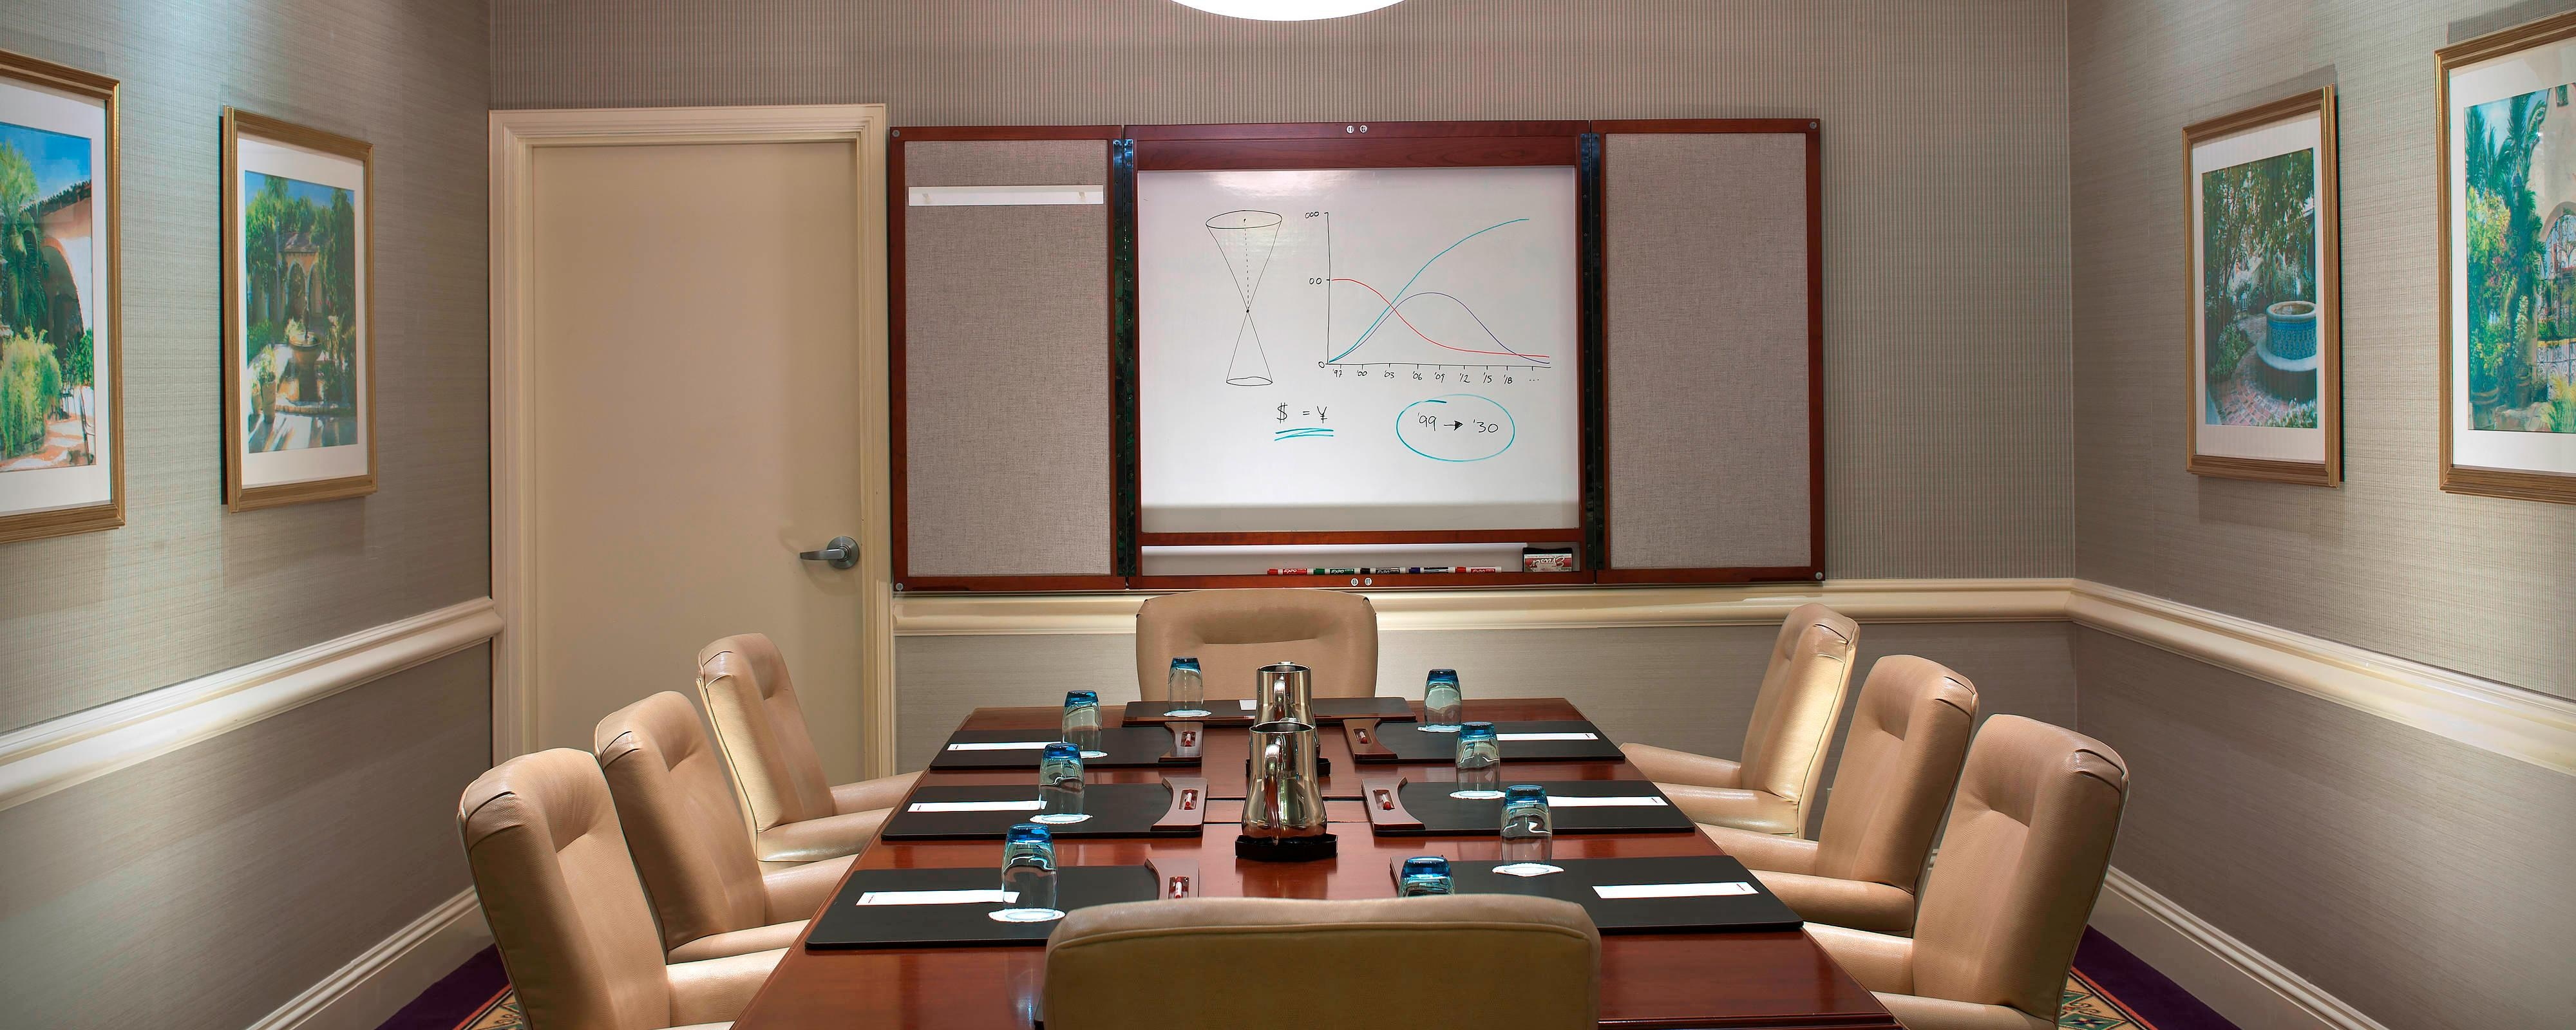 Hotels With Meeting Rooms In West Palm Beach